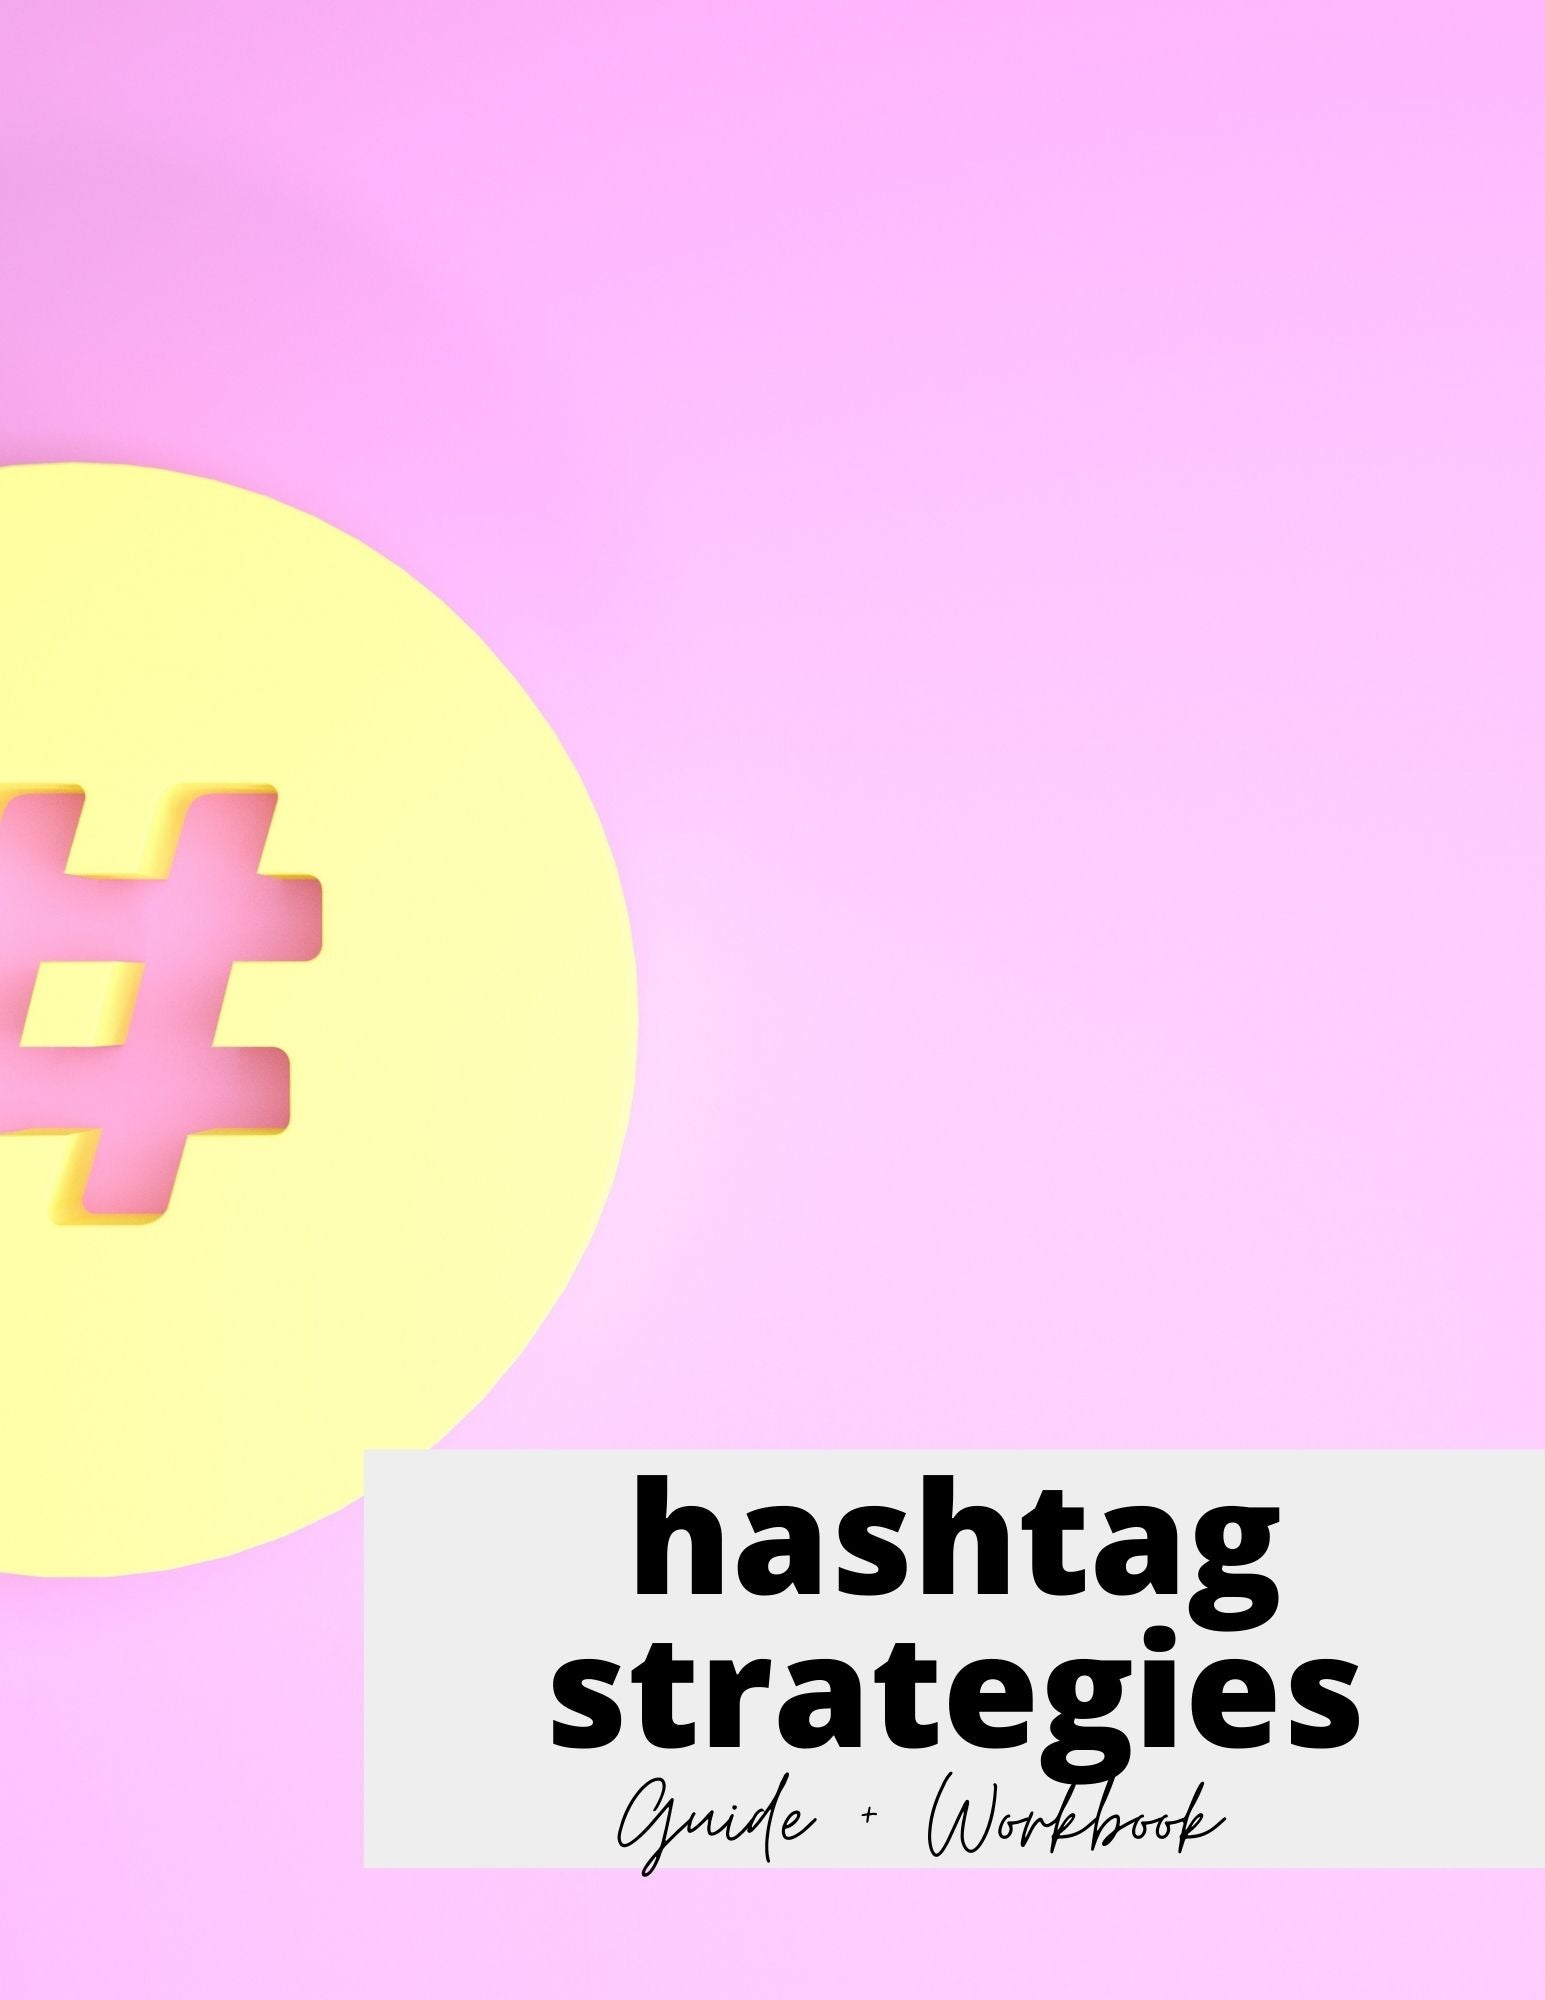 Hashtag Strategies Guide + Workbook (eBook)